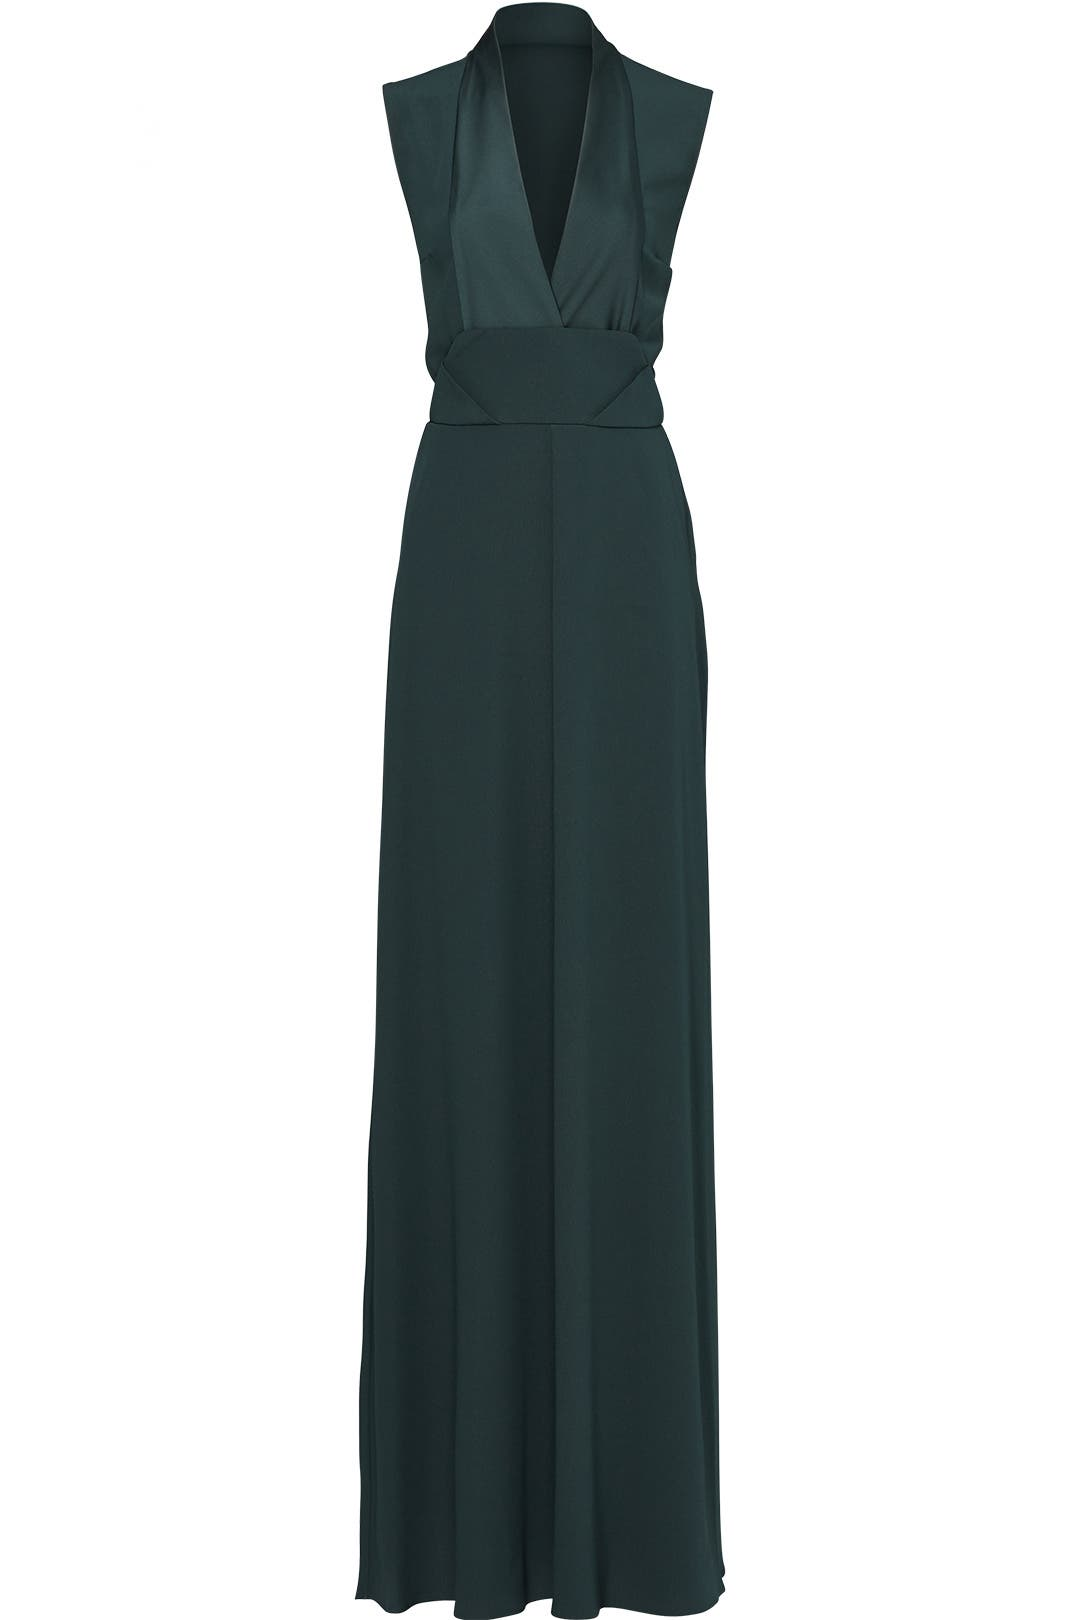 Forest Green Envelope Structure Gown by Carven for $90 - $110 | Rent ...